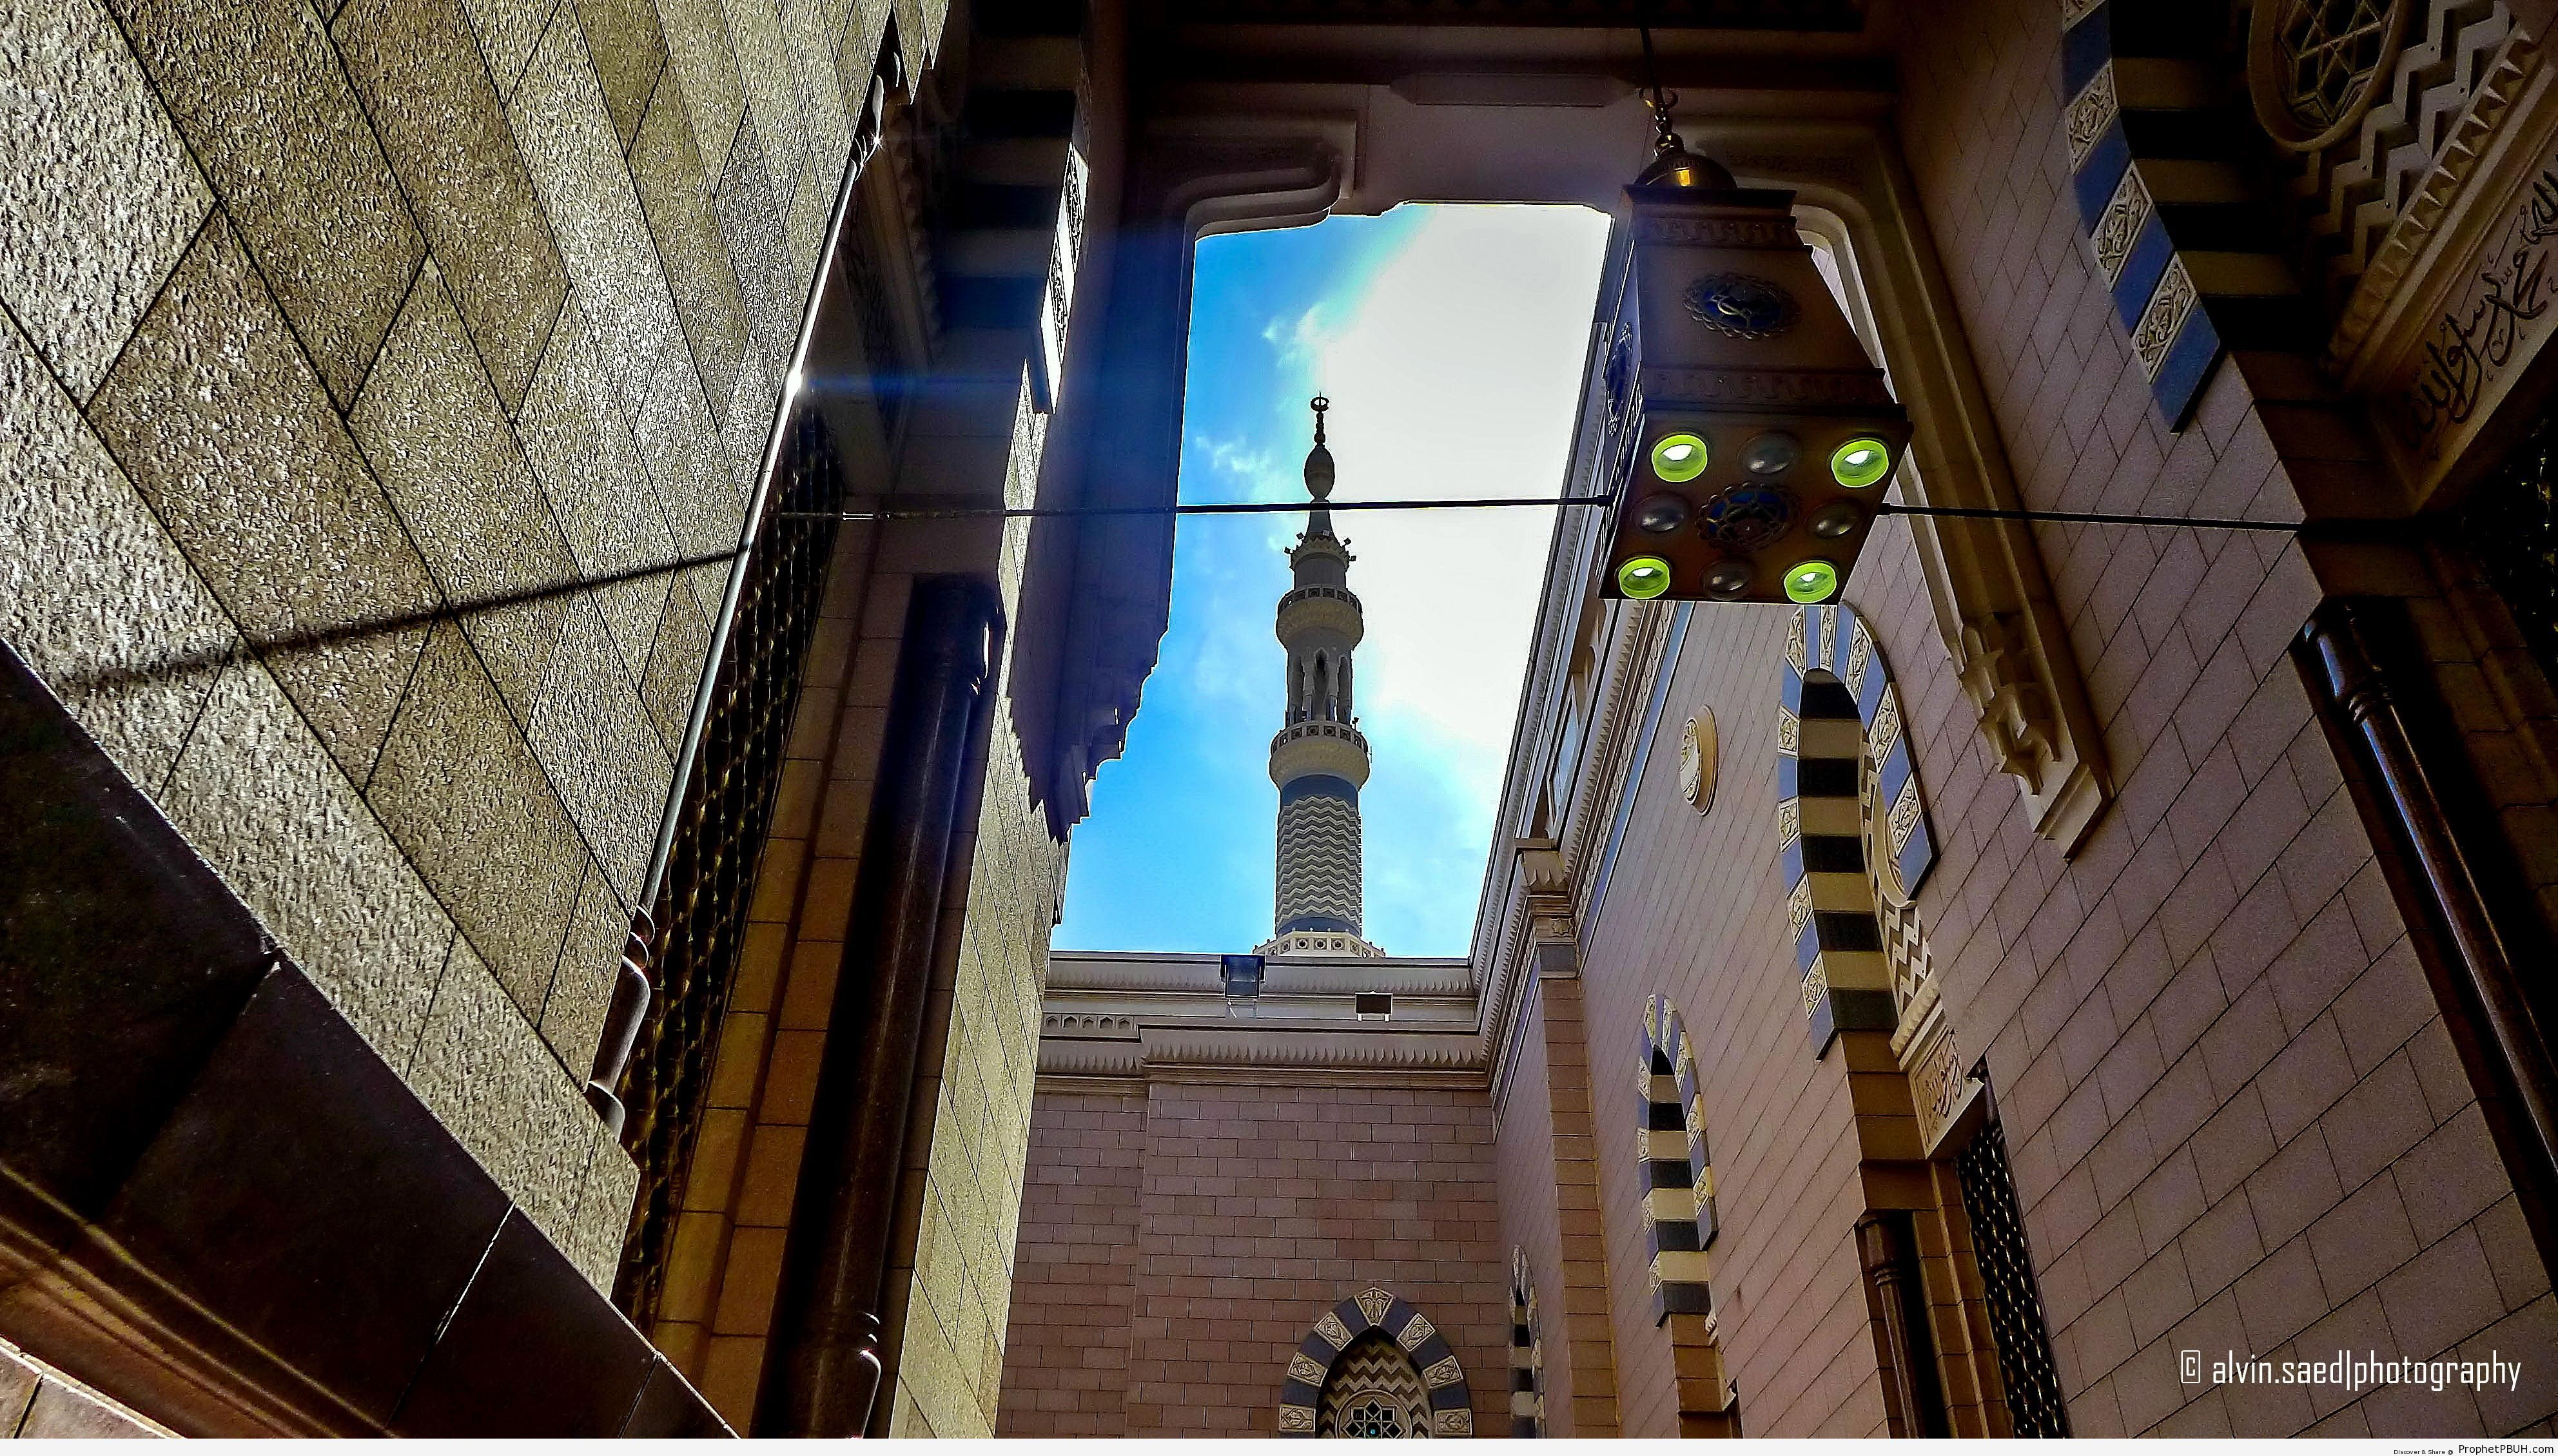 Peaceful Alley by the Gate of Abu Dhar (Inside Mosque of the Prophet in Madinah) - Al-Masjid an-Nabawi (The Prophets Mosque) in Madinah, Saudi Arabia